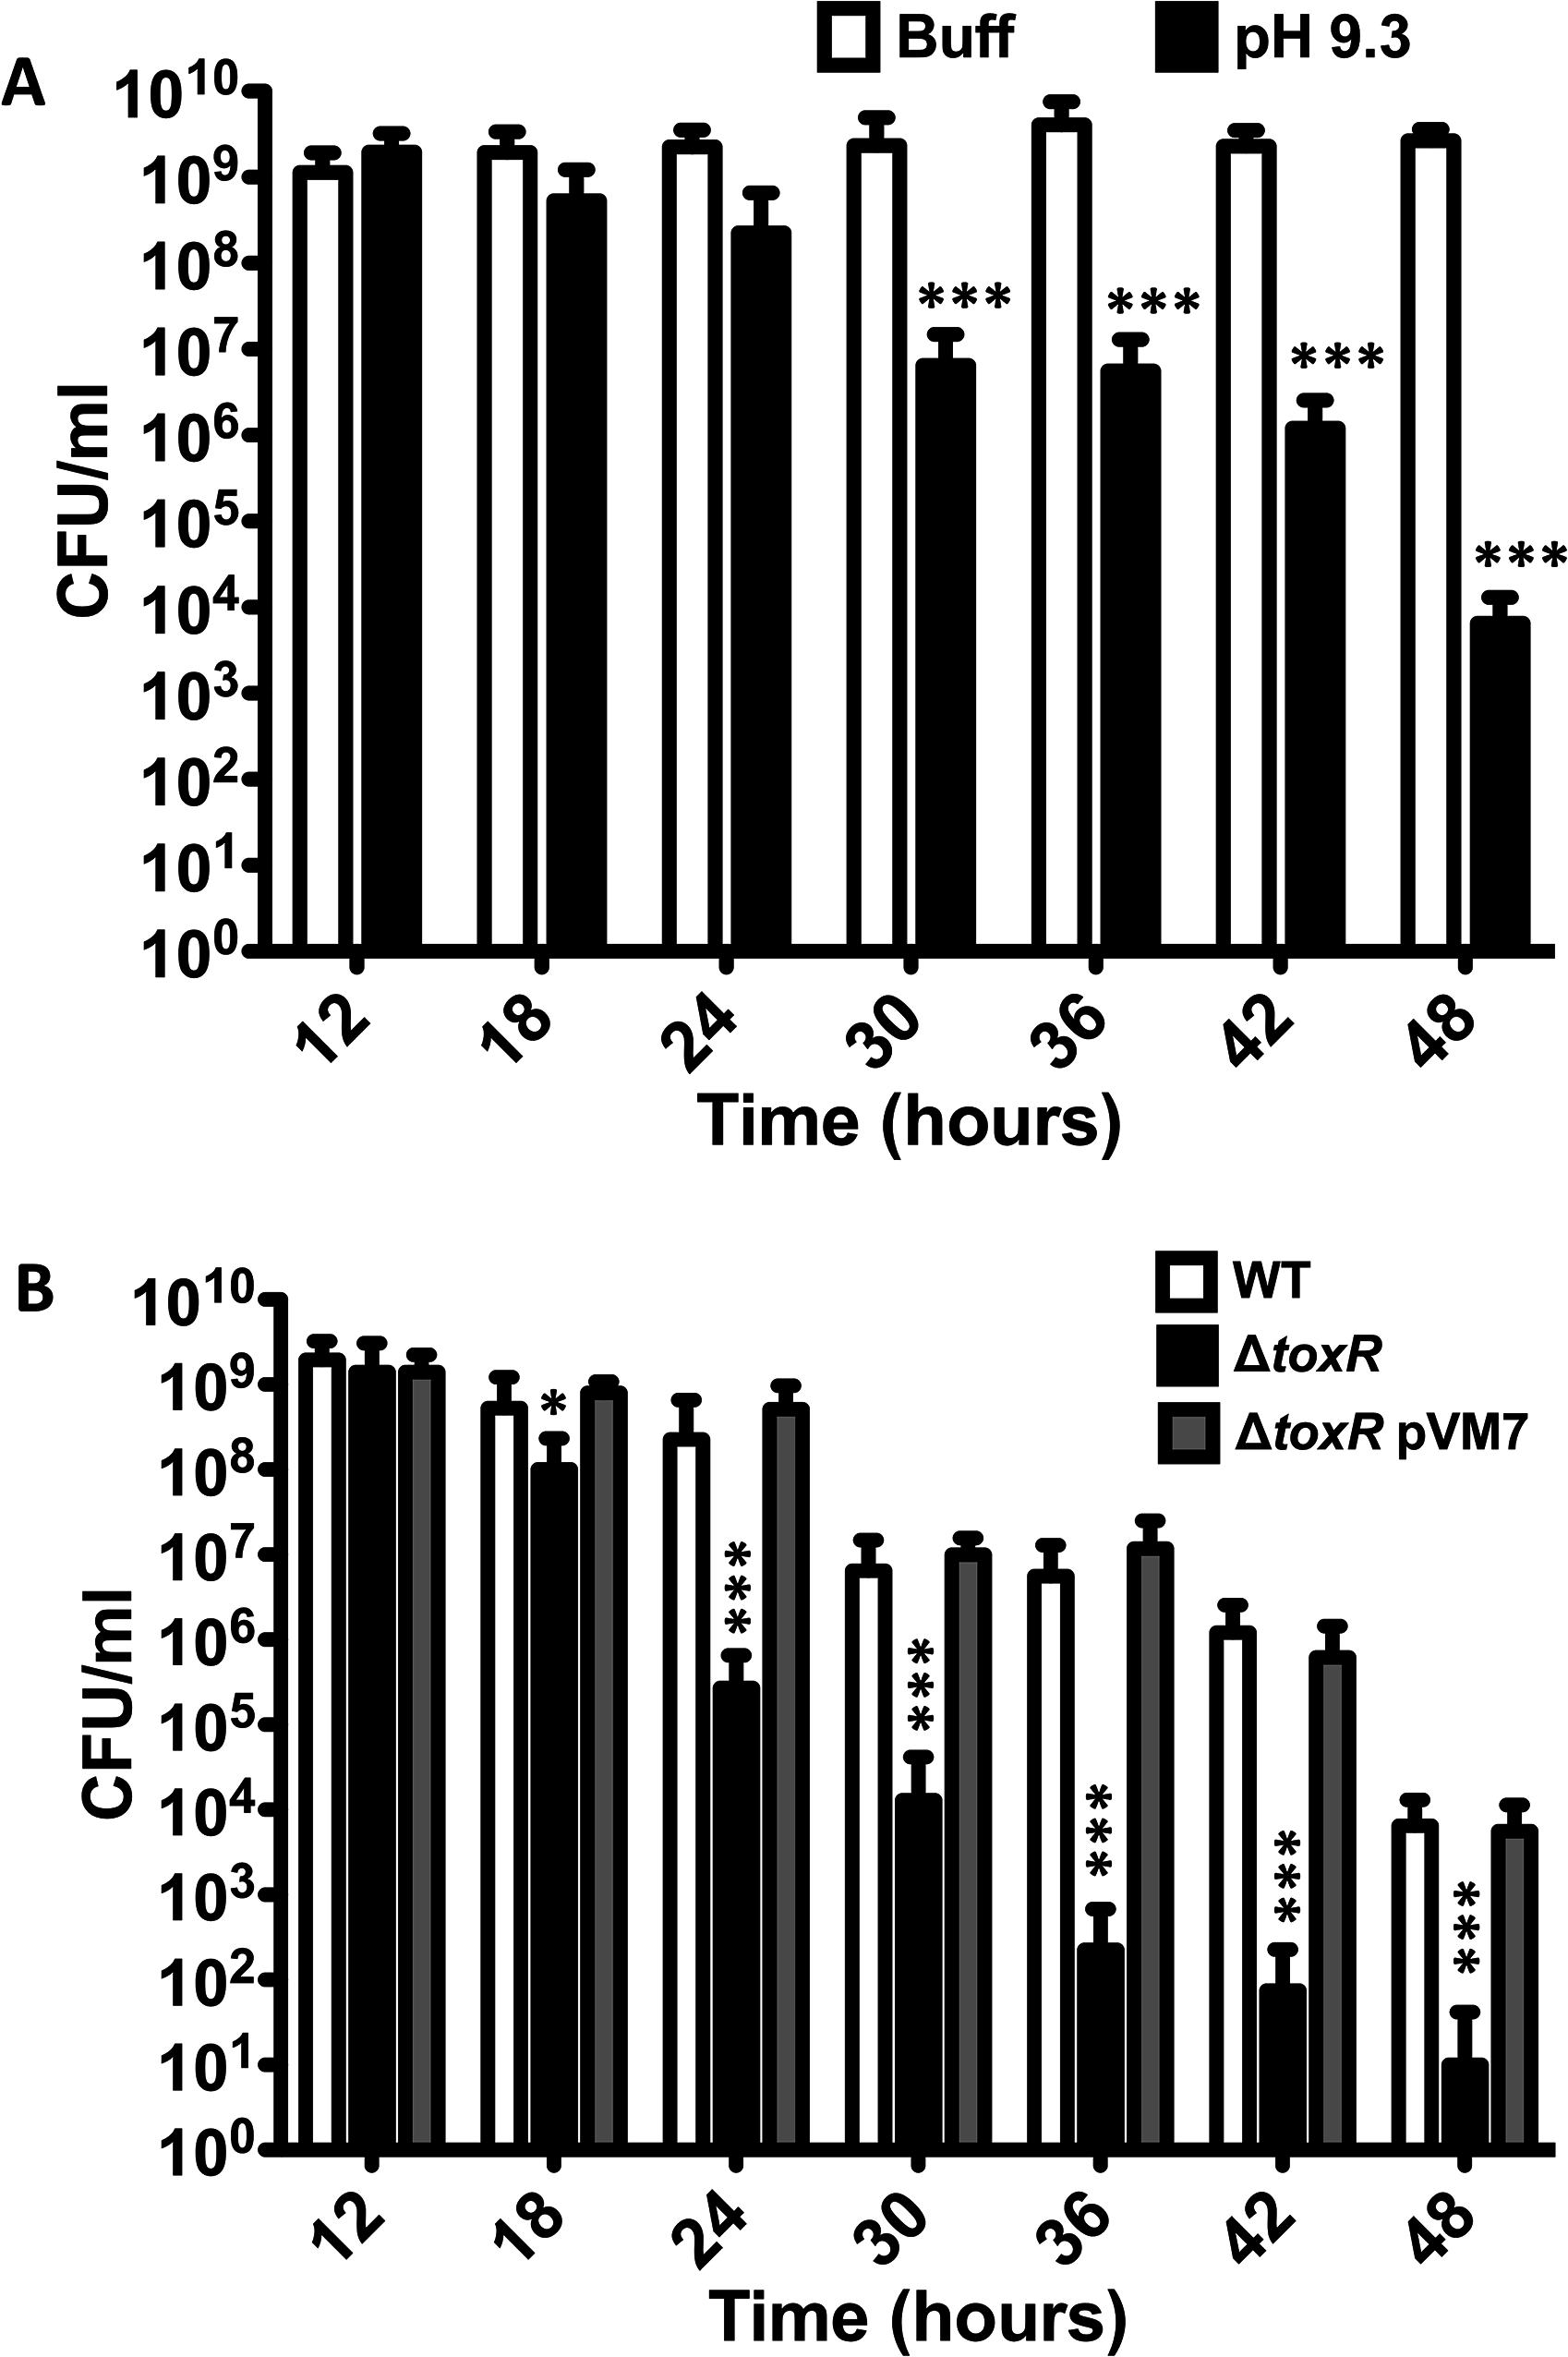 <i>V</i>. <i>cholerae</i> shows reduced culturability over time at alkaline pH.